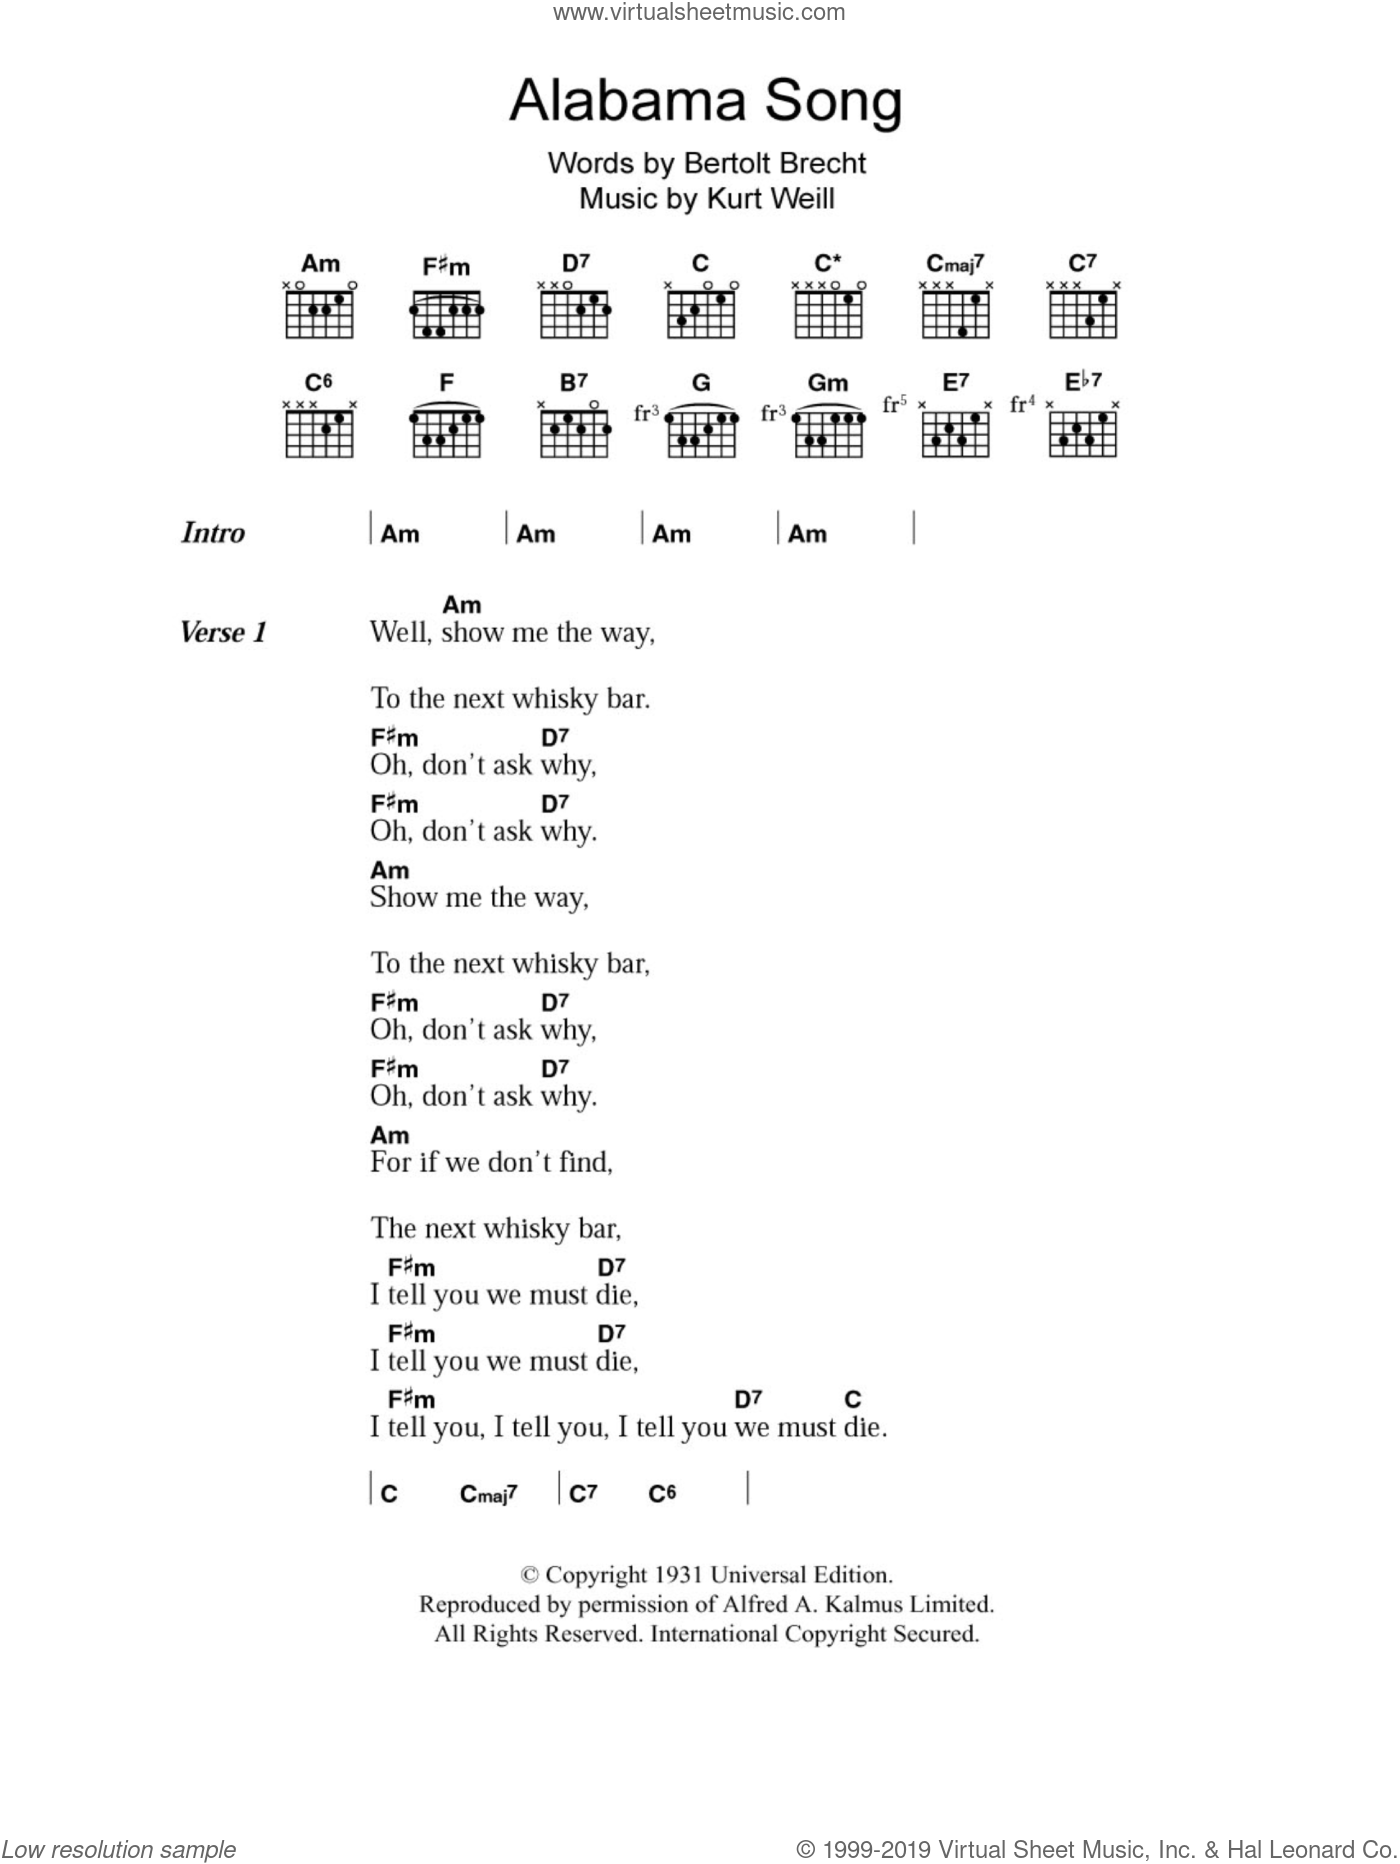 Alabama Song sheet music for guitar (chords) by Kurt Weill